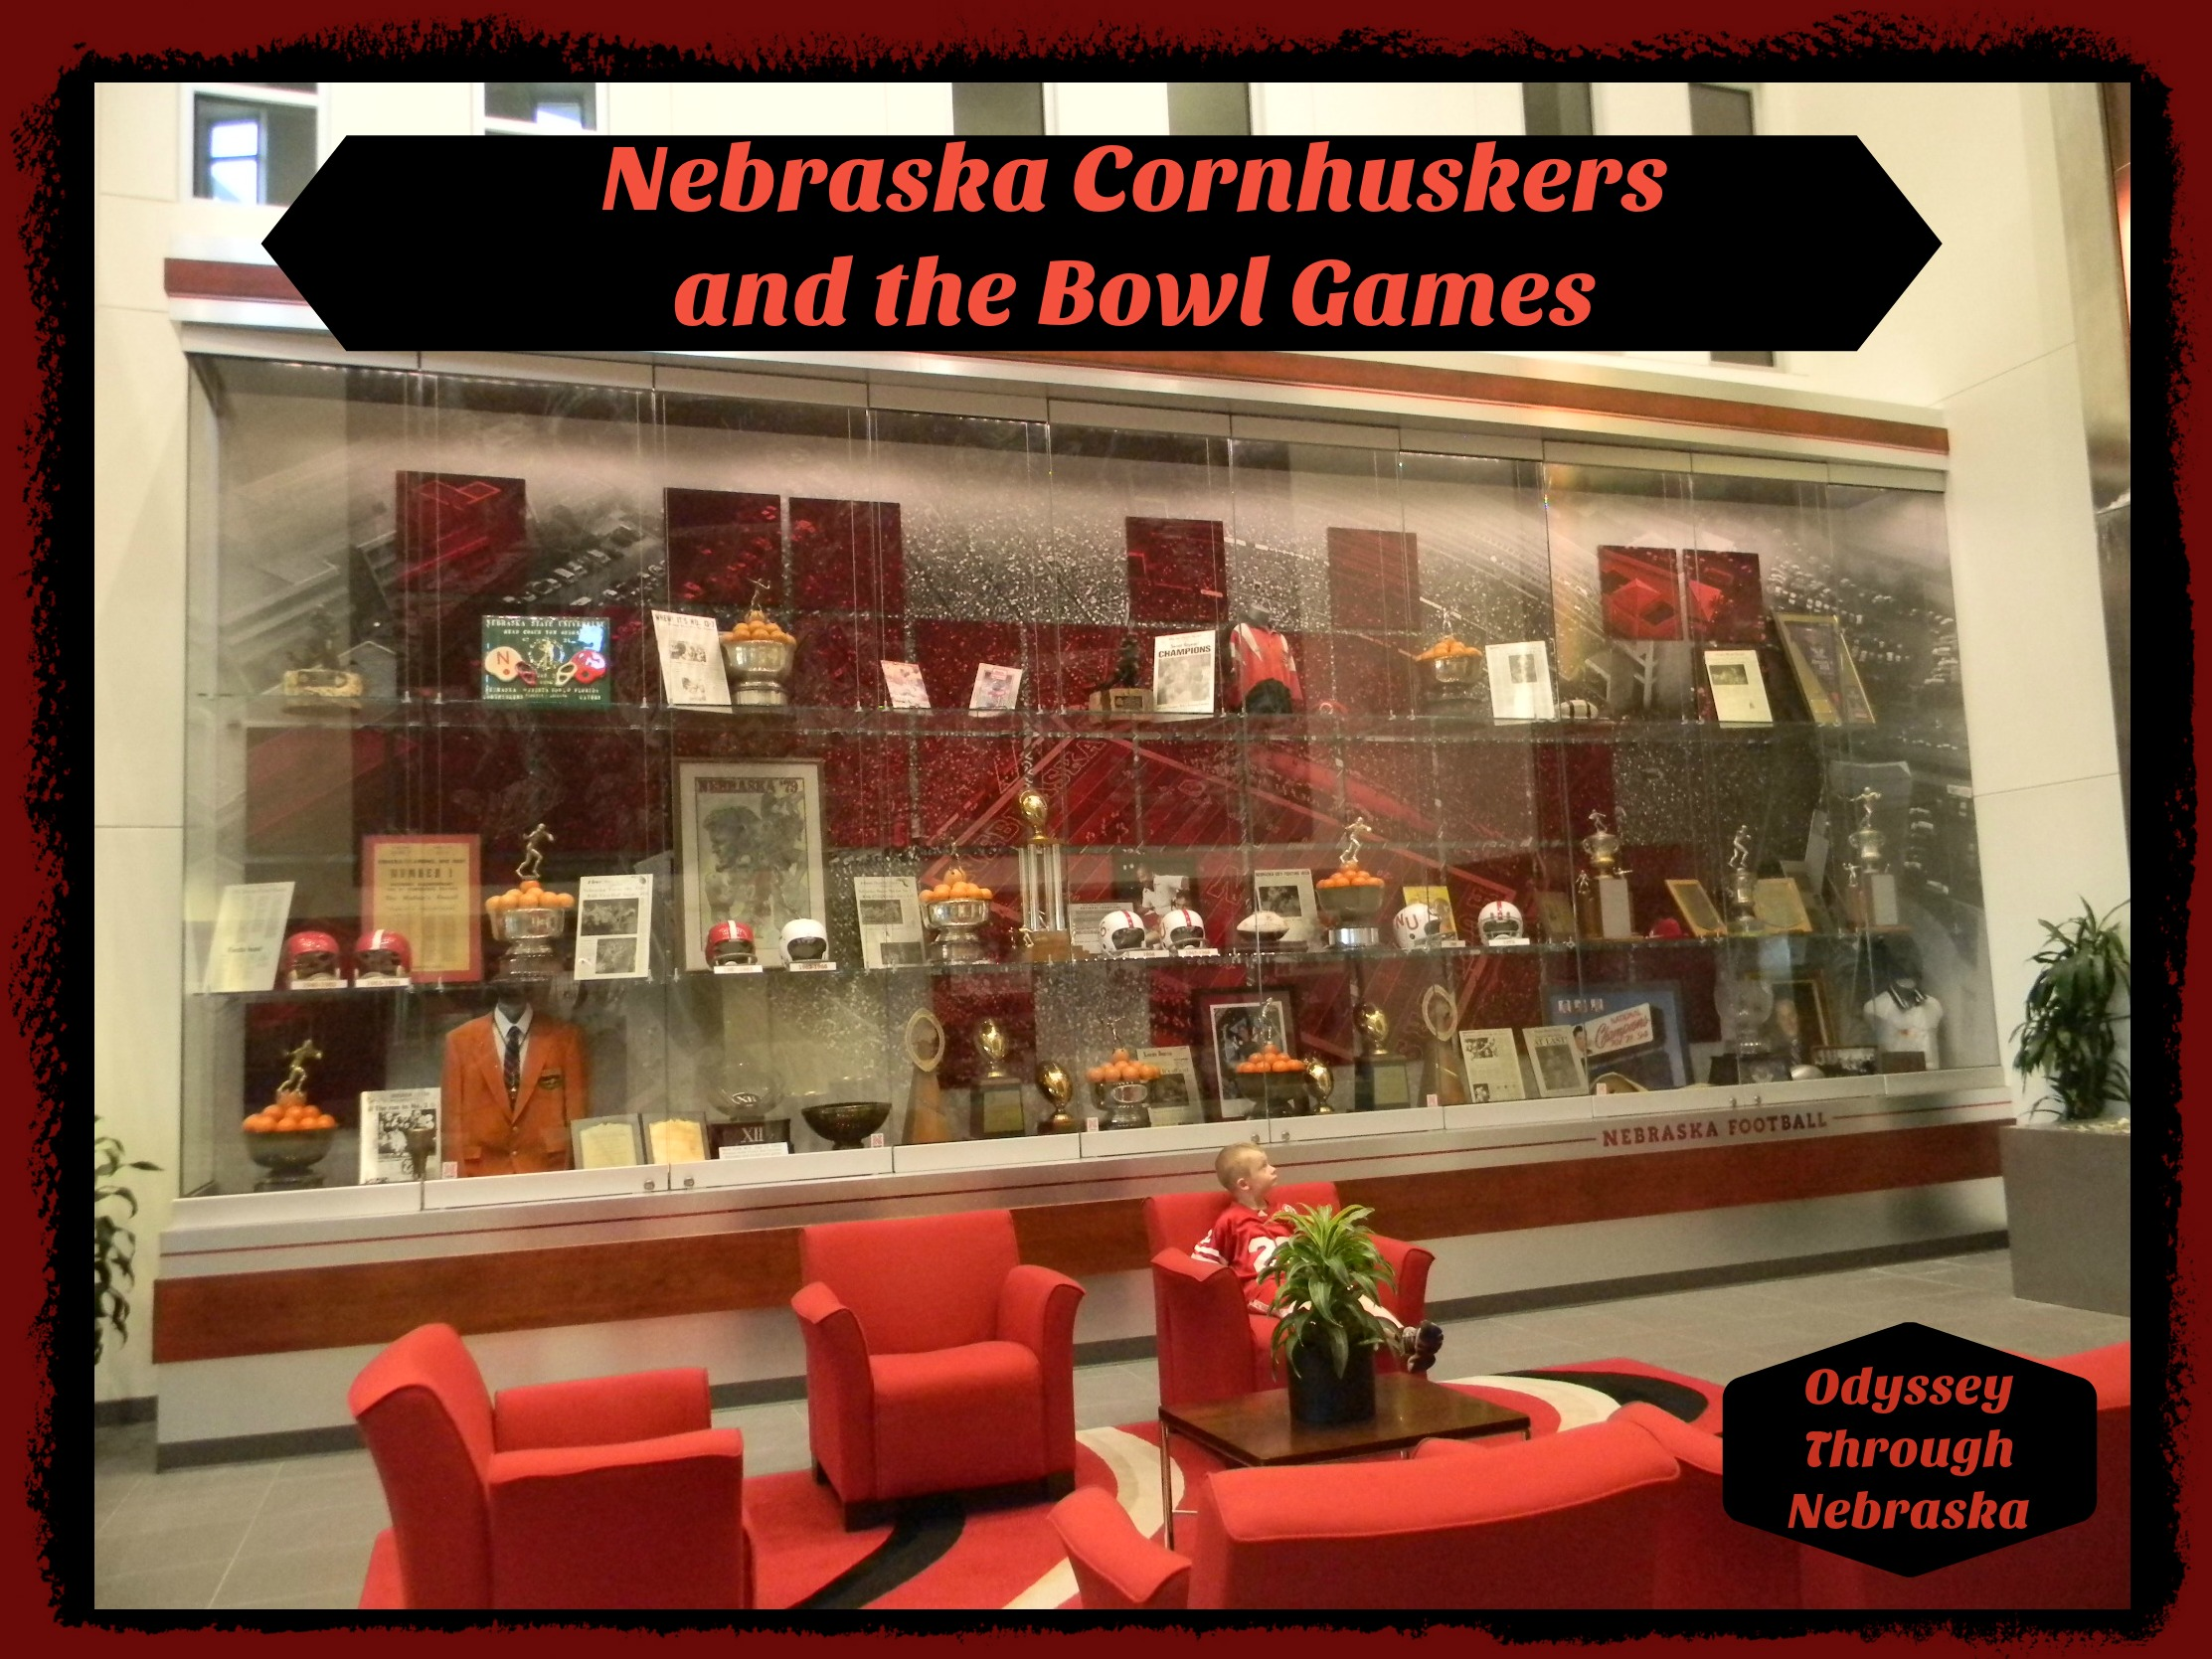 Nebraska Cornhuskers and the Bowl Games